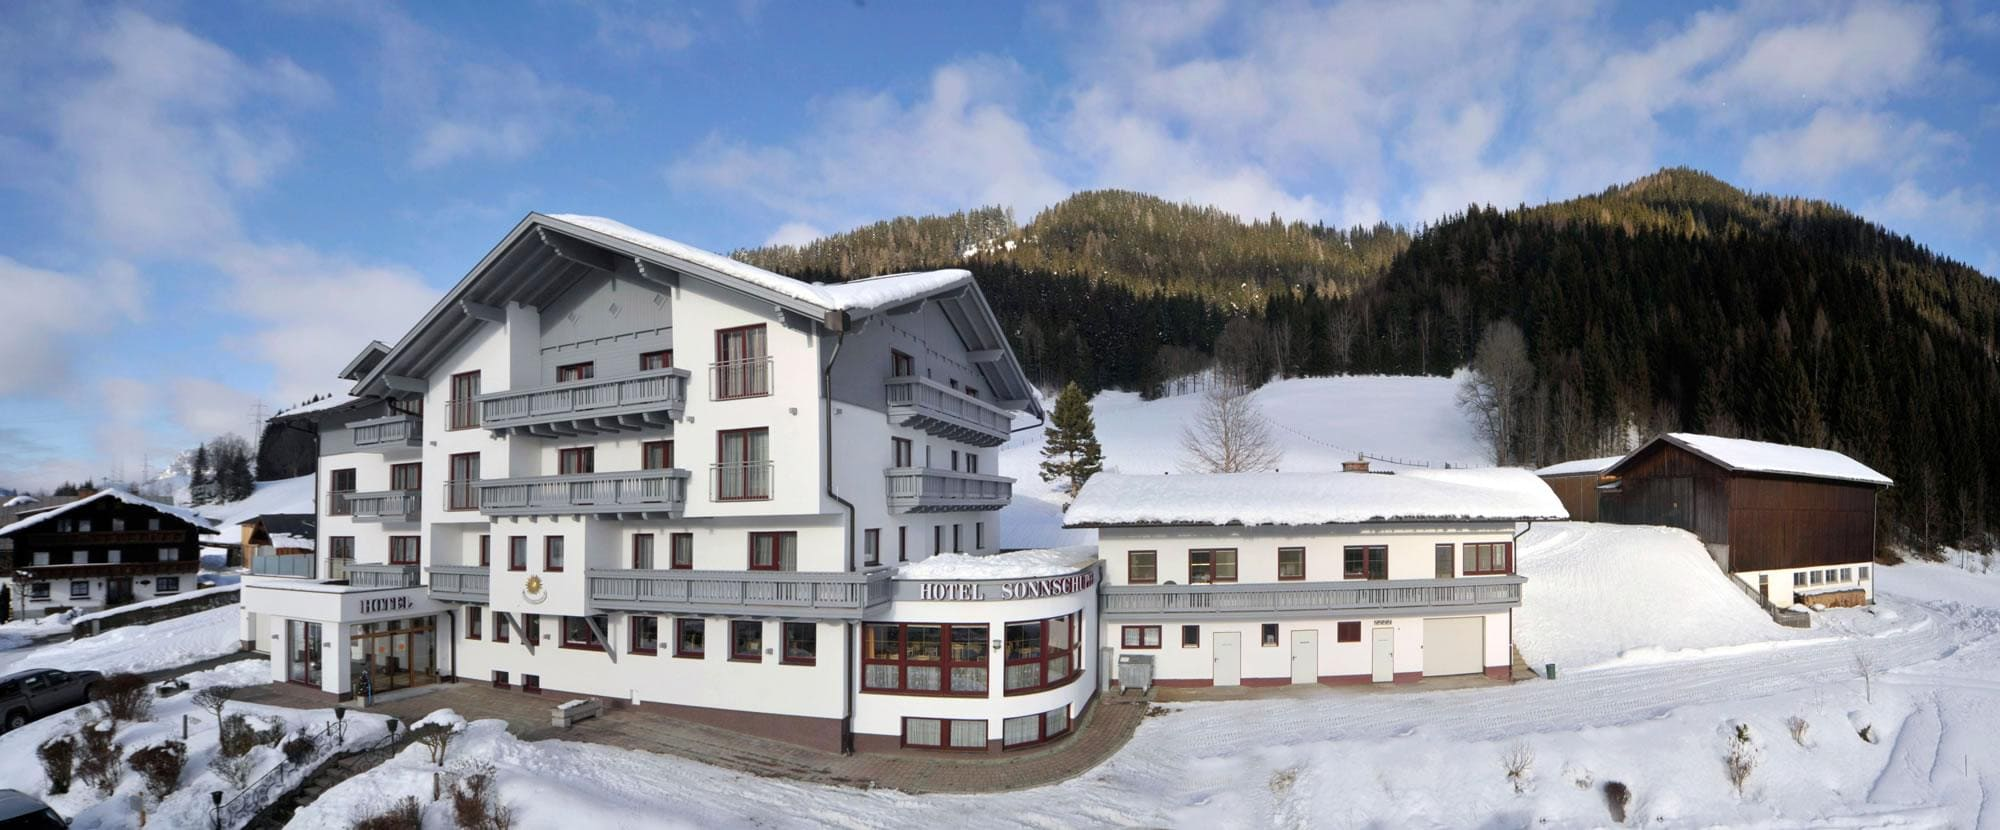 Schladming Hotel Sonnschupfer | Good value 3 star Superior Hotel in the Schladming-Dachstein area -> perfect for your winter holiday in Austria